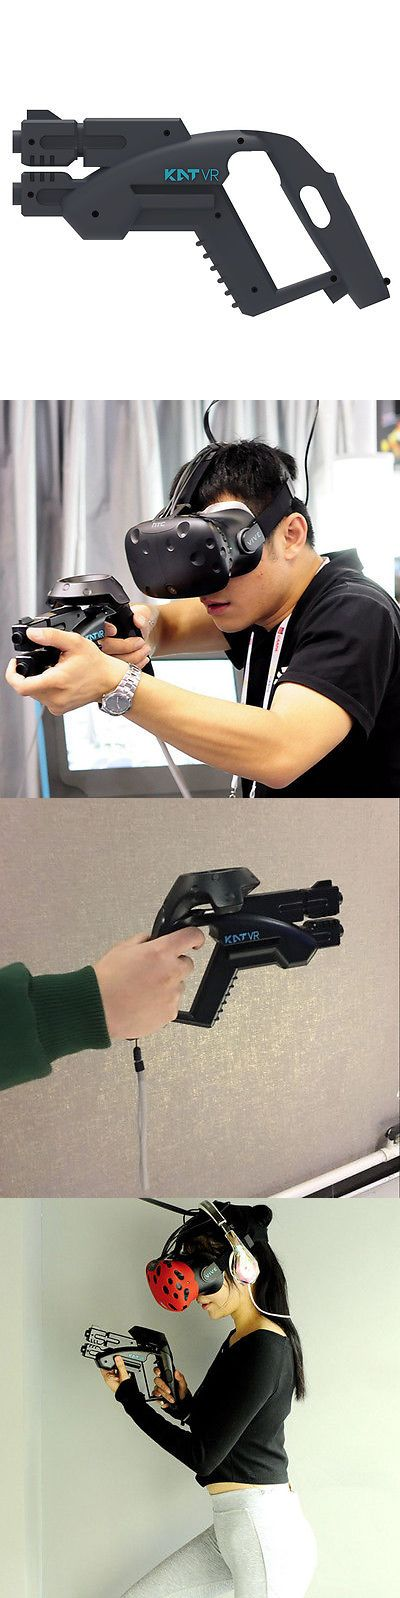 Other Virtual Reality Accs: Vr Handgun Shooting Game Small Pistol Gun For Htc Vive Glasses Vr Shop -> BUY IT NOW ONLY: $55 on eBay!